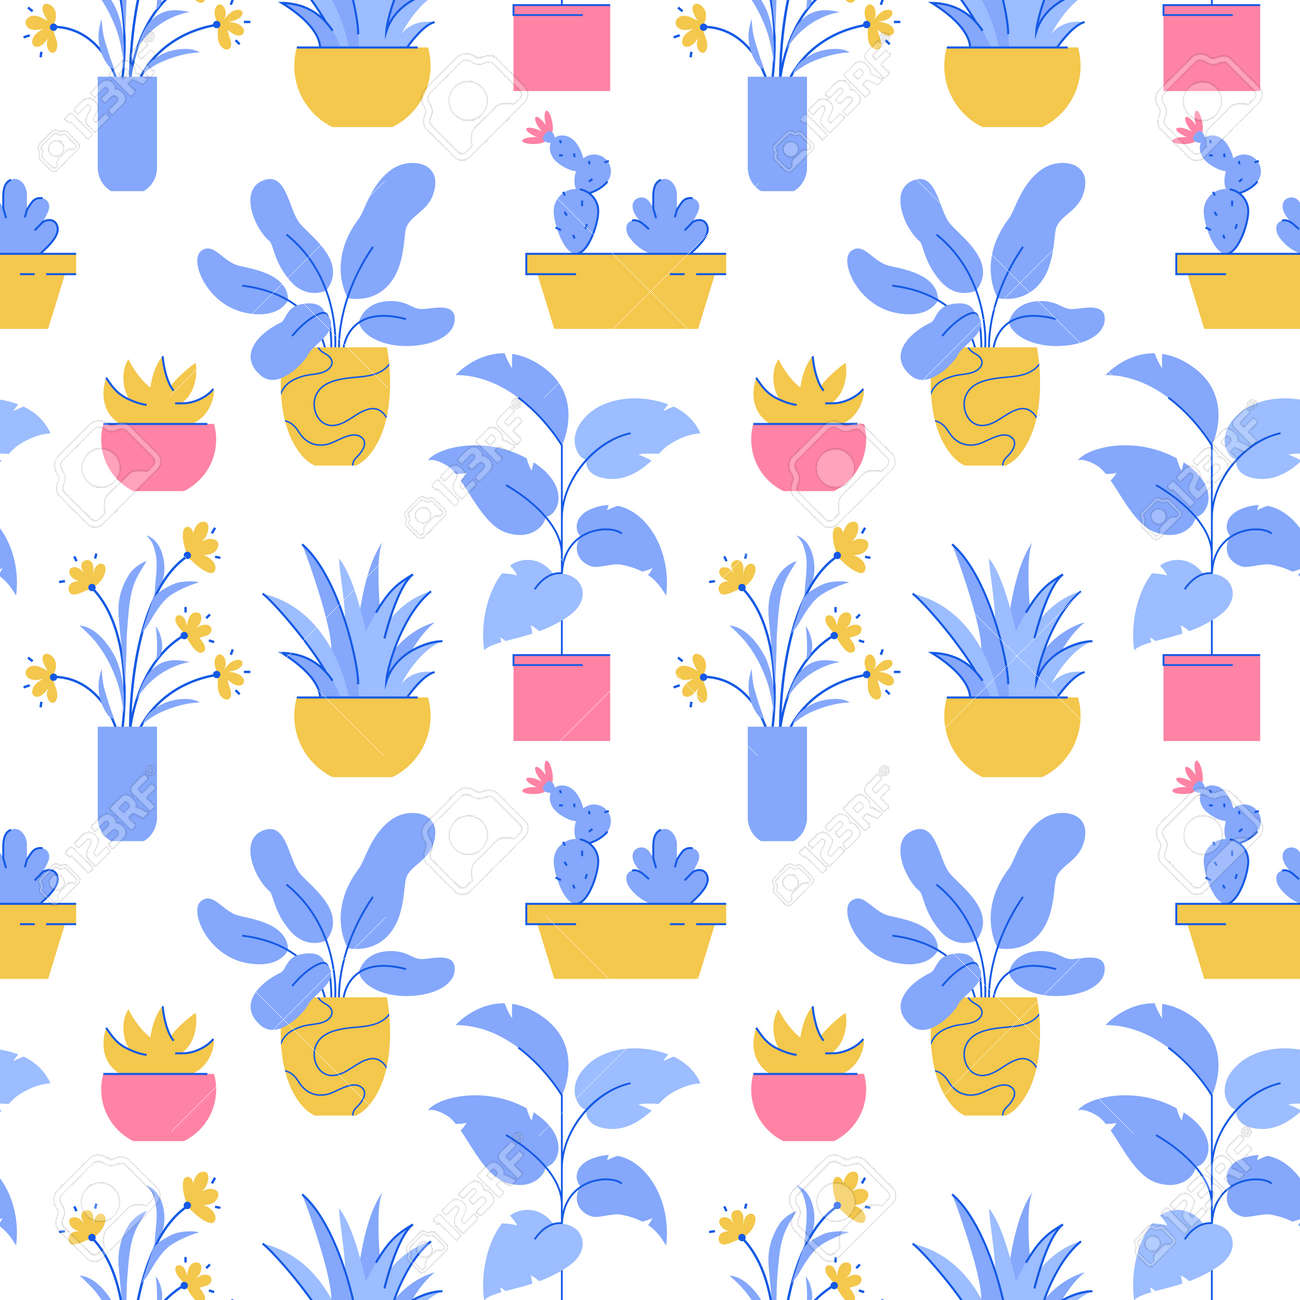 Houseplant seamless pattern. Vector background with different potted plants. - 162361758